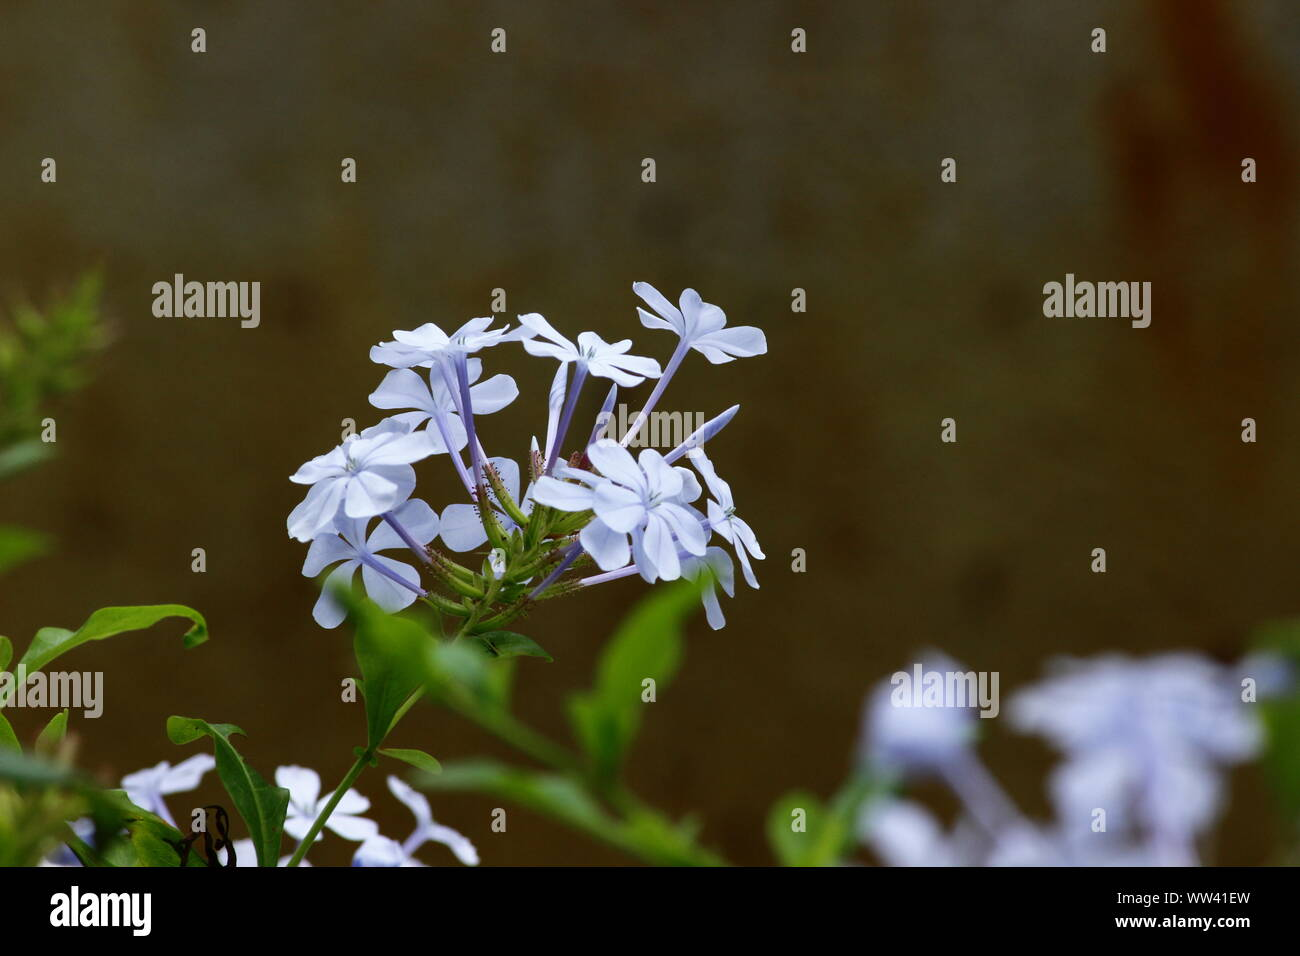 WHITE BEAUTY IN NATURE Stock Photo